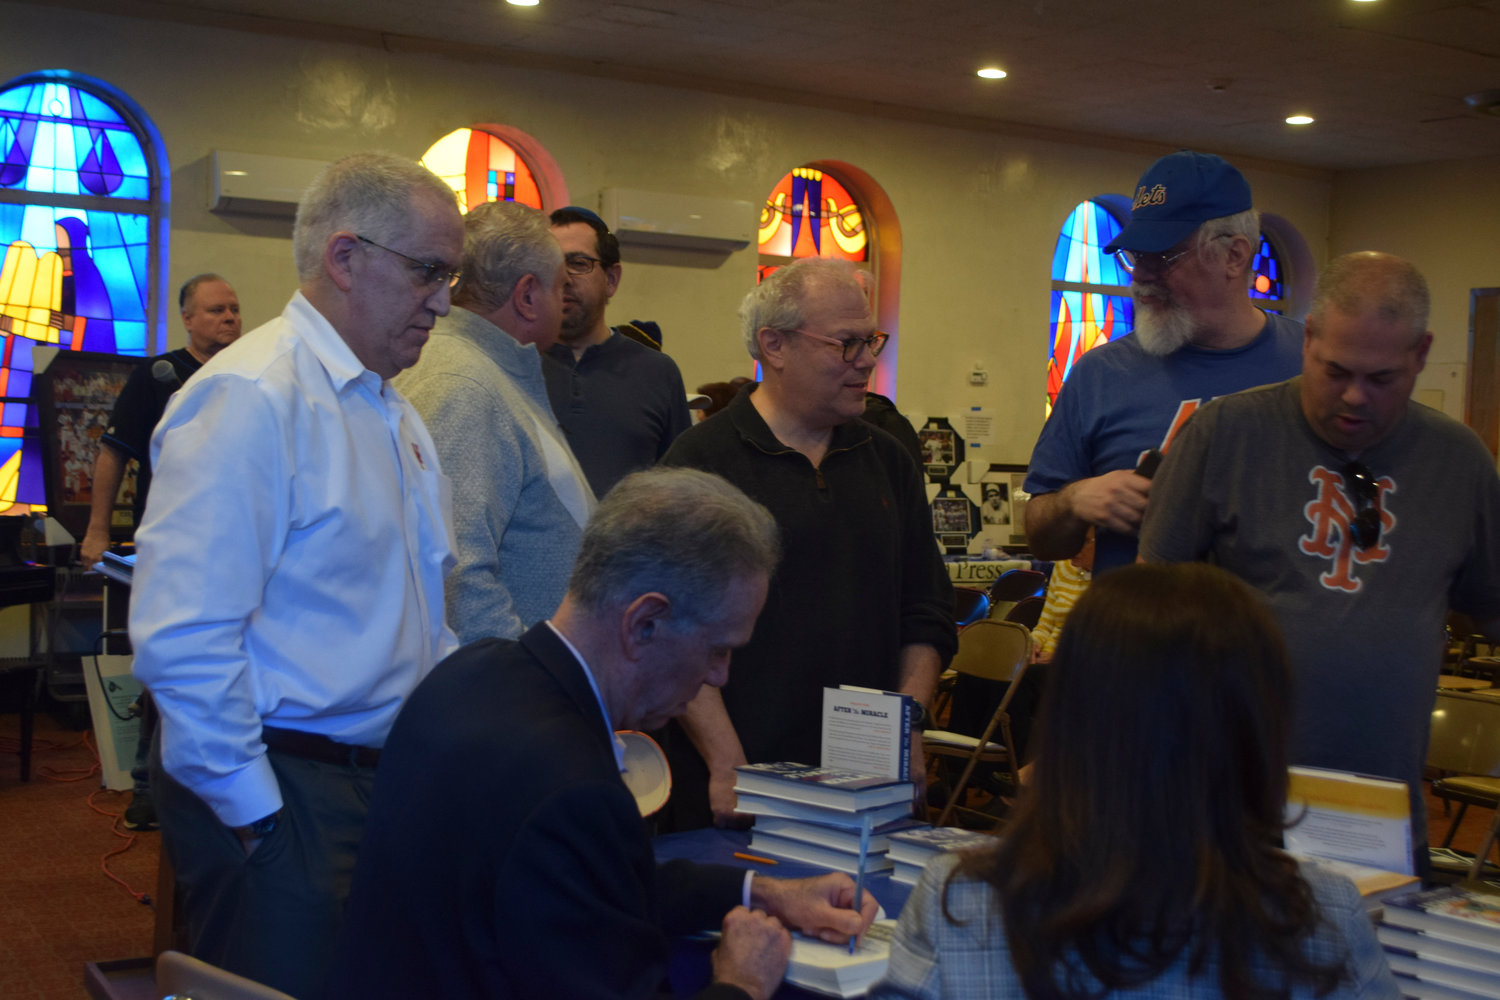 Former New York Mets player Art Shamsky signed one of his two books at Temple Israel on April 7.